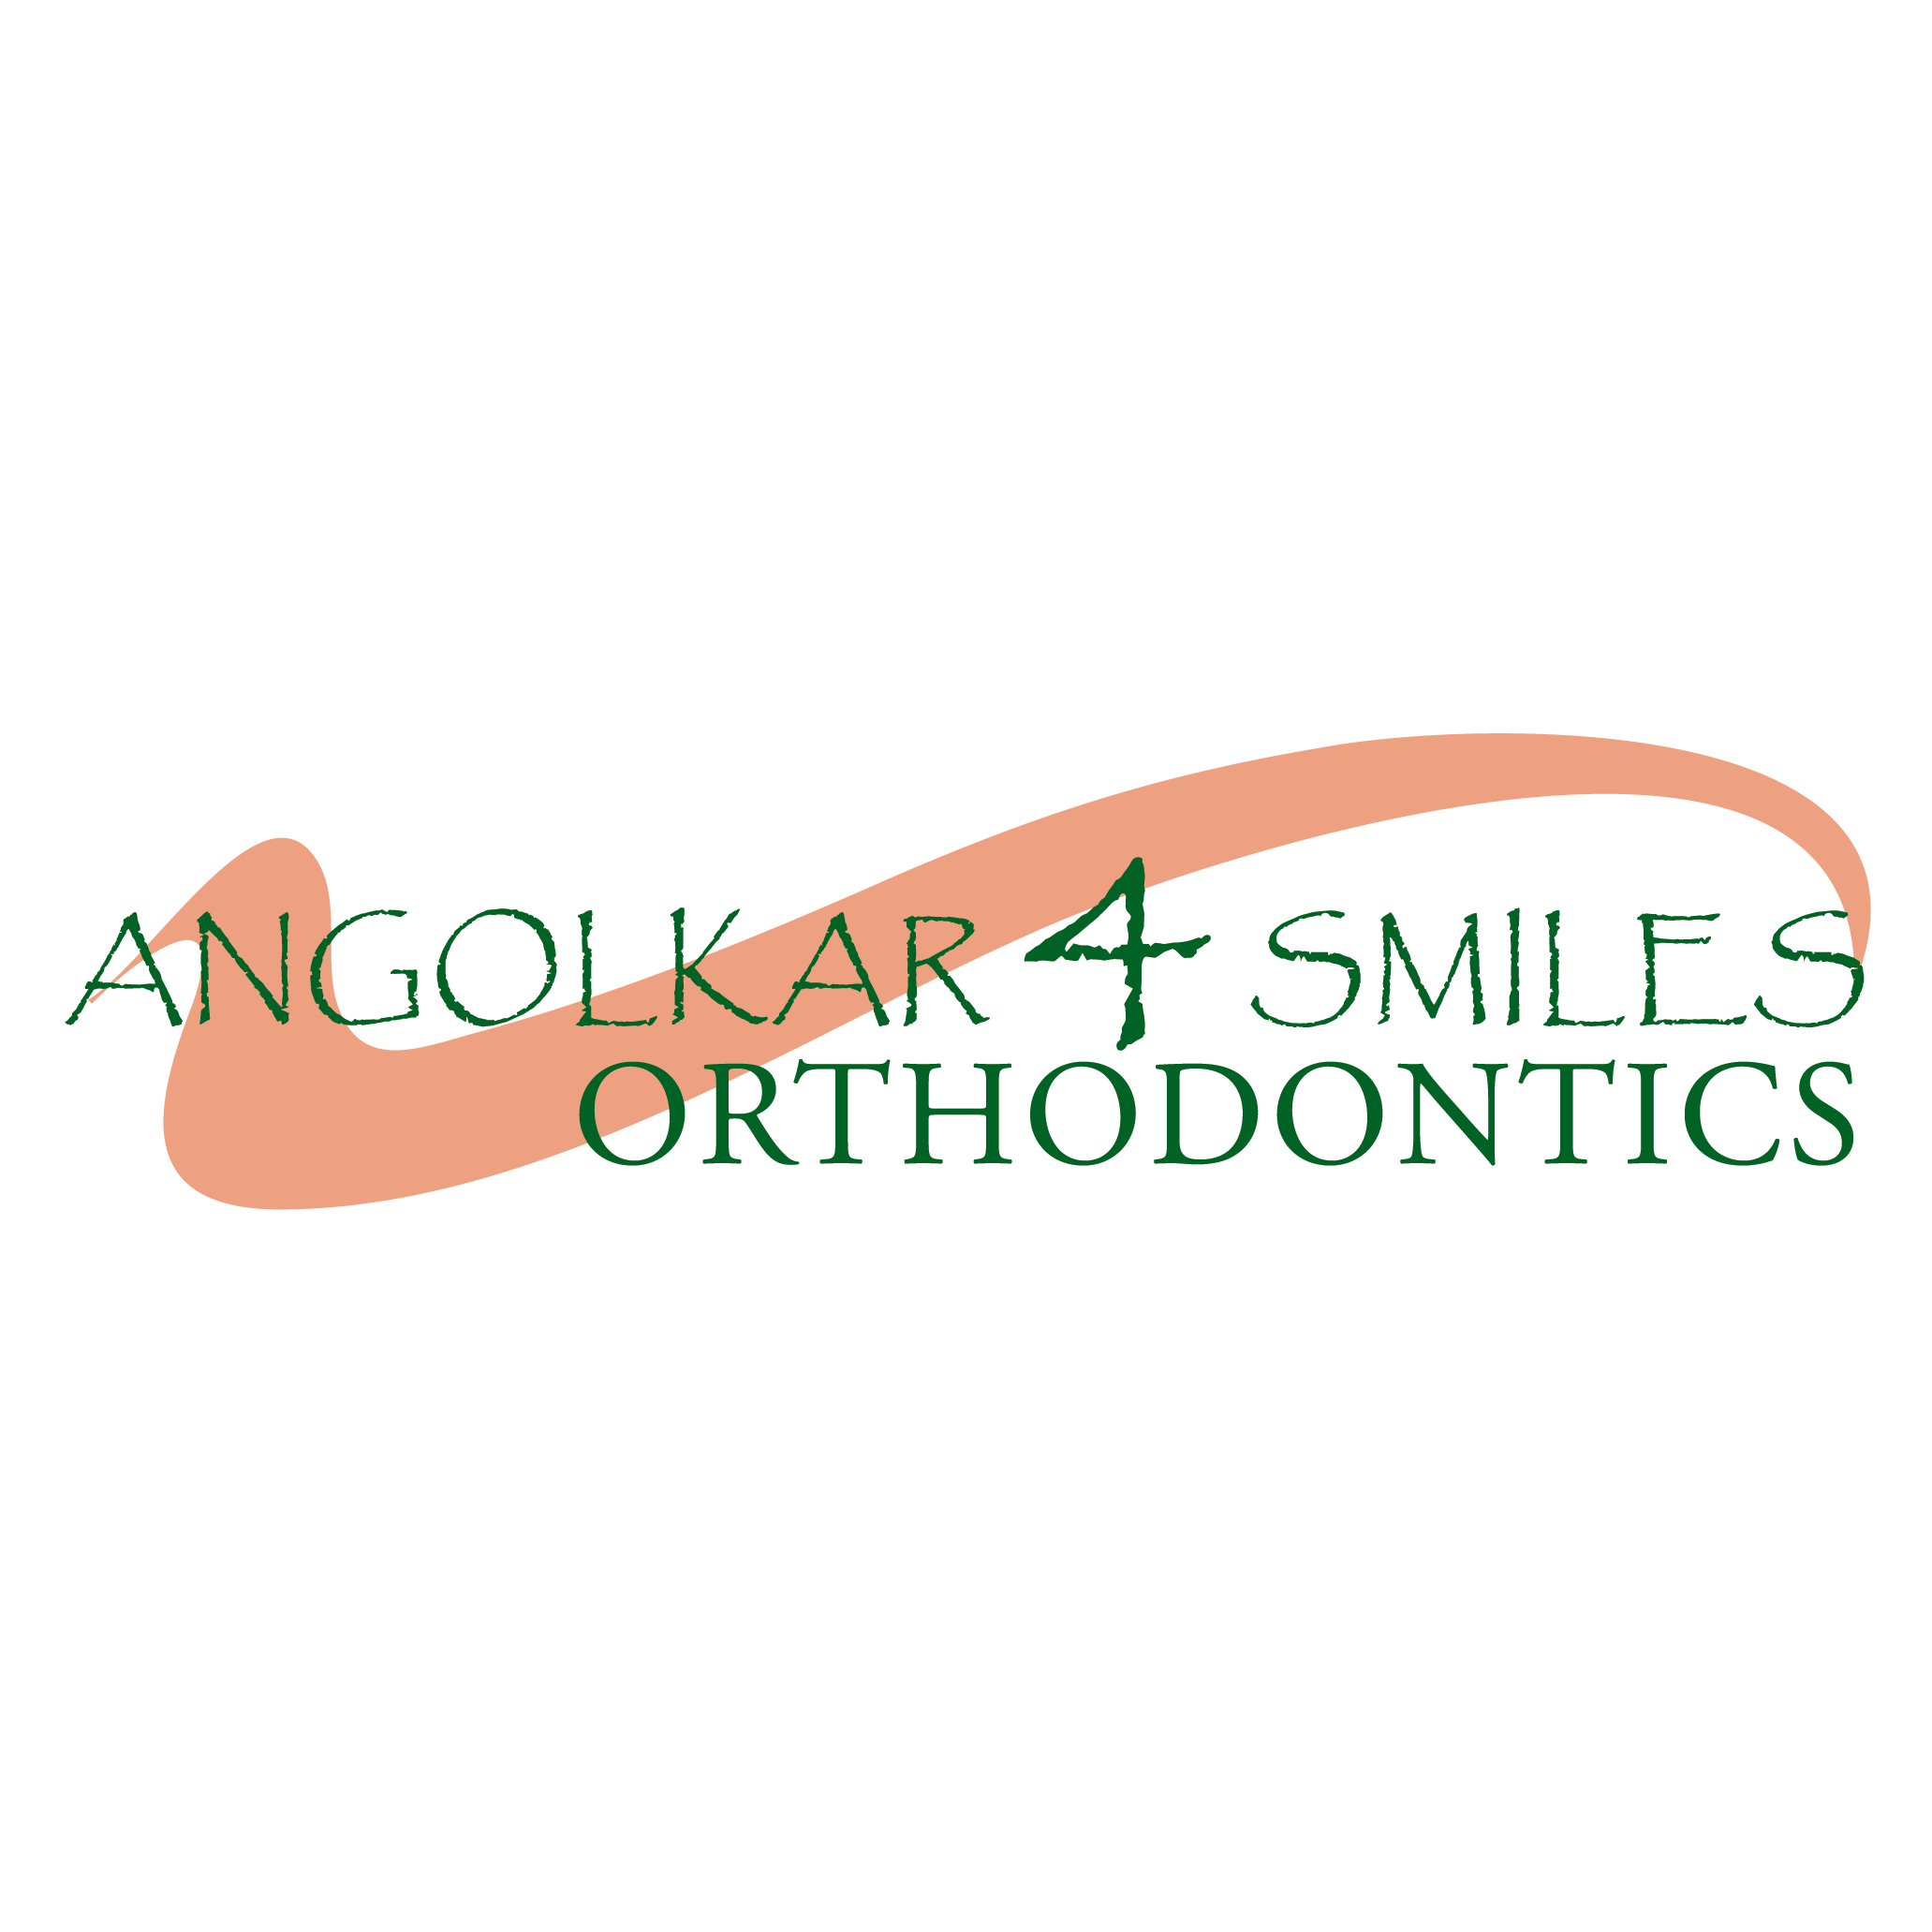 Angolkar 4 Smiles Orthodontics - Issaquah, WA - Dentists & Dental Services